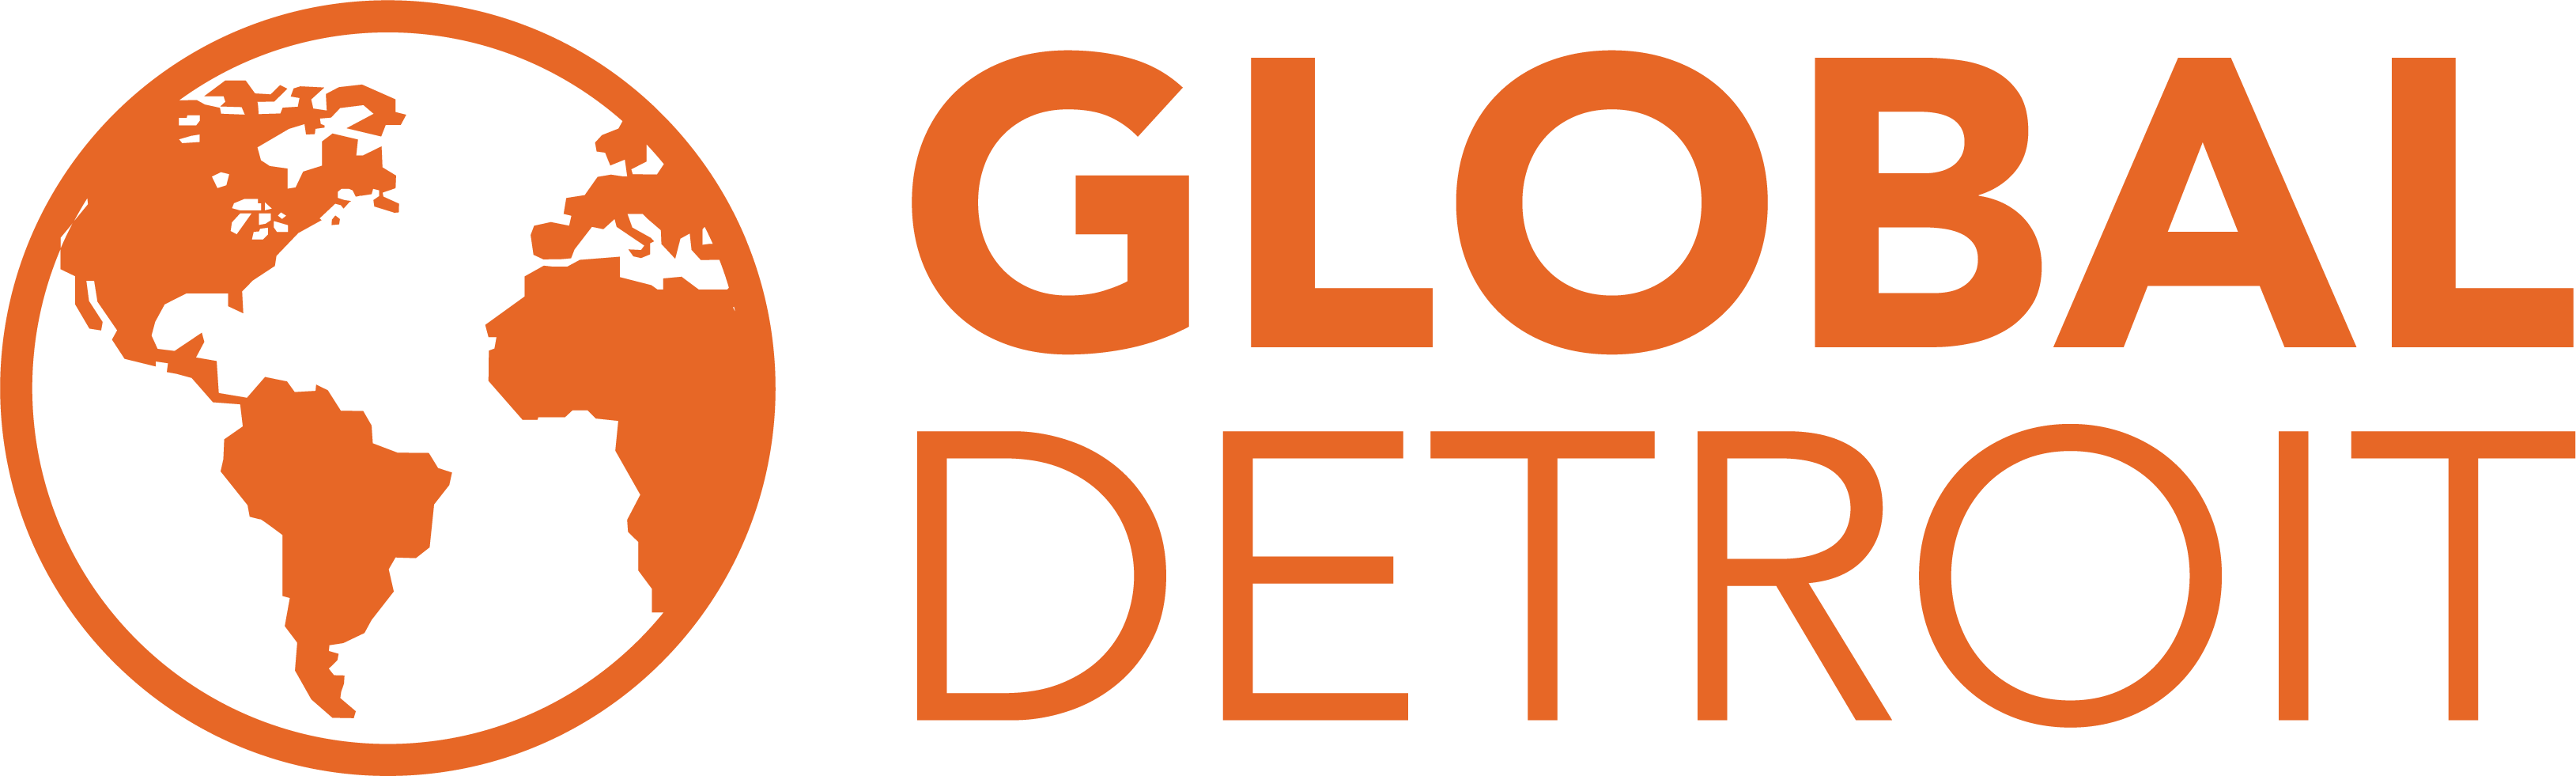 Global Detroit